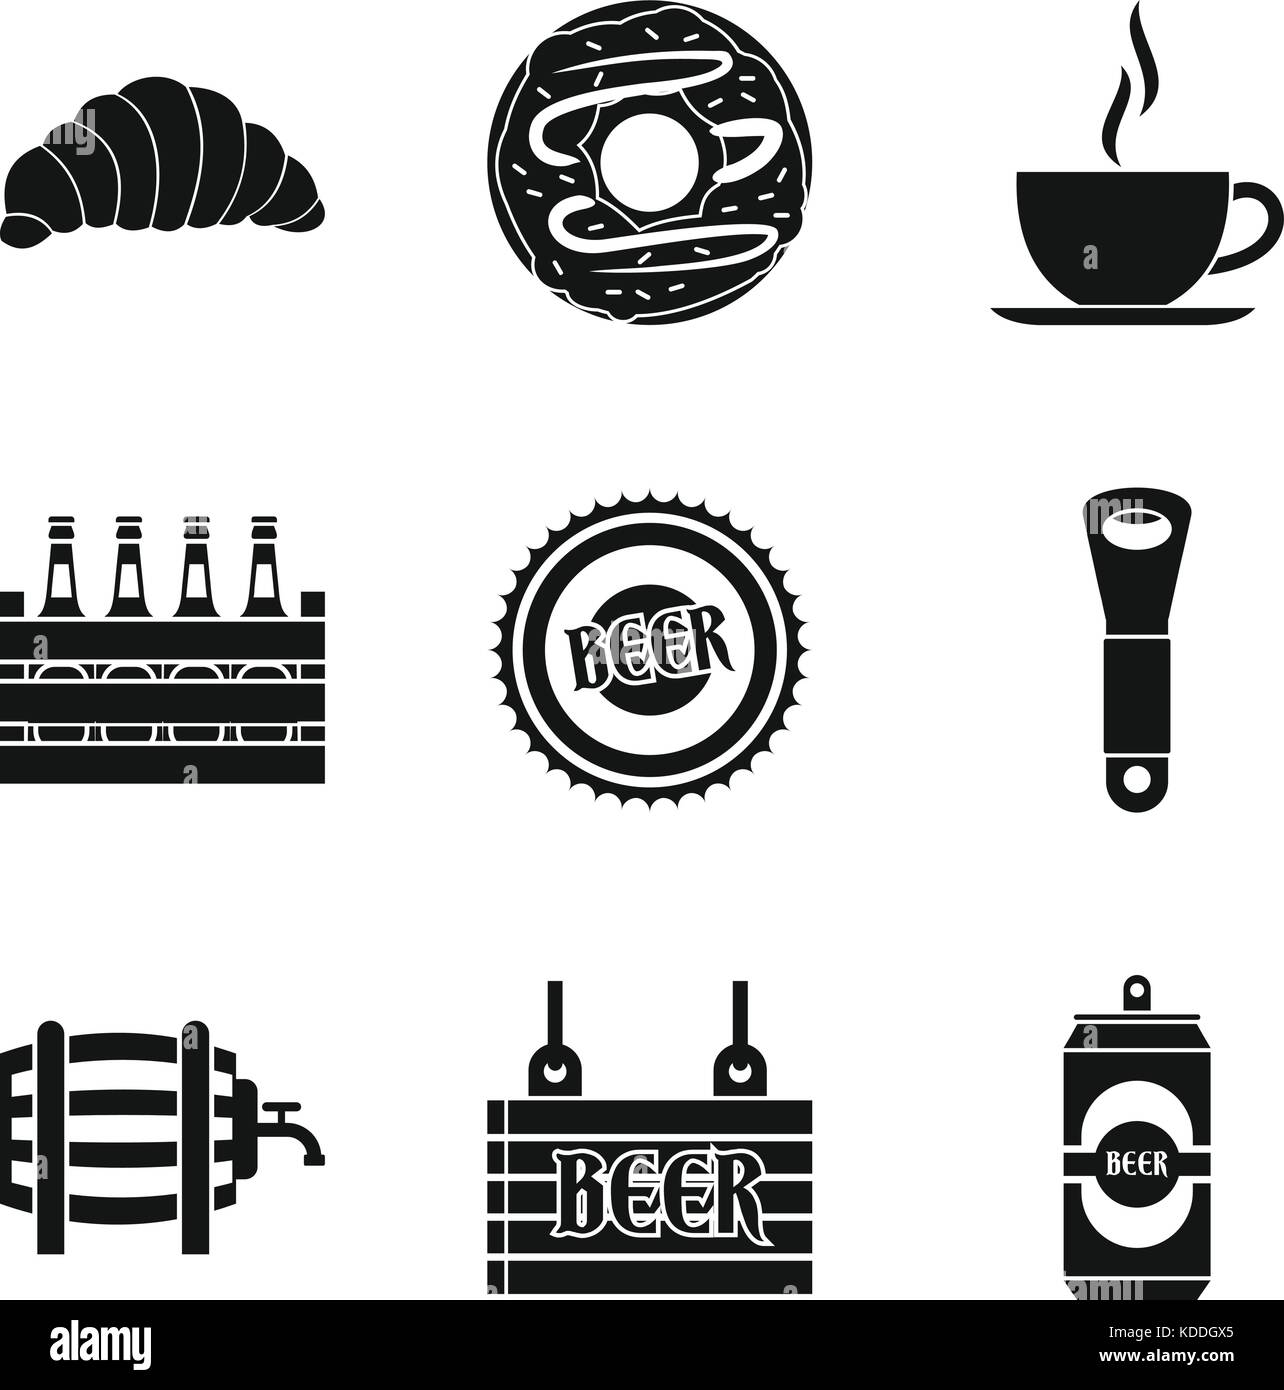 Beer on draft icons set, simple style - Stock Image